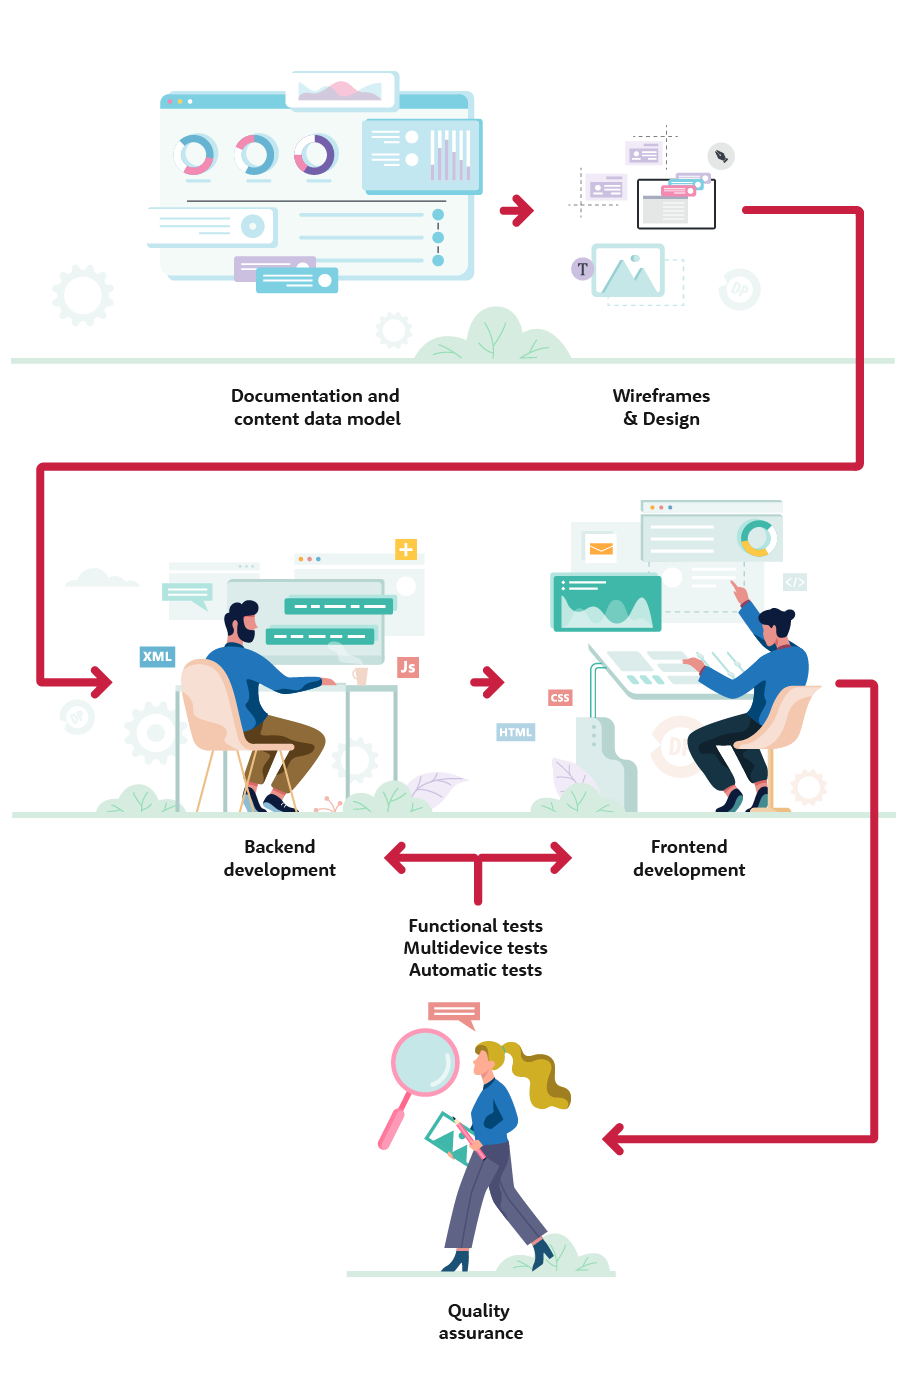 Drupal based product development process. It's important to focus in the first phase on content data model. This will safe a lot of time later on in the project.